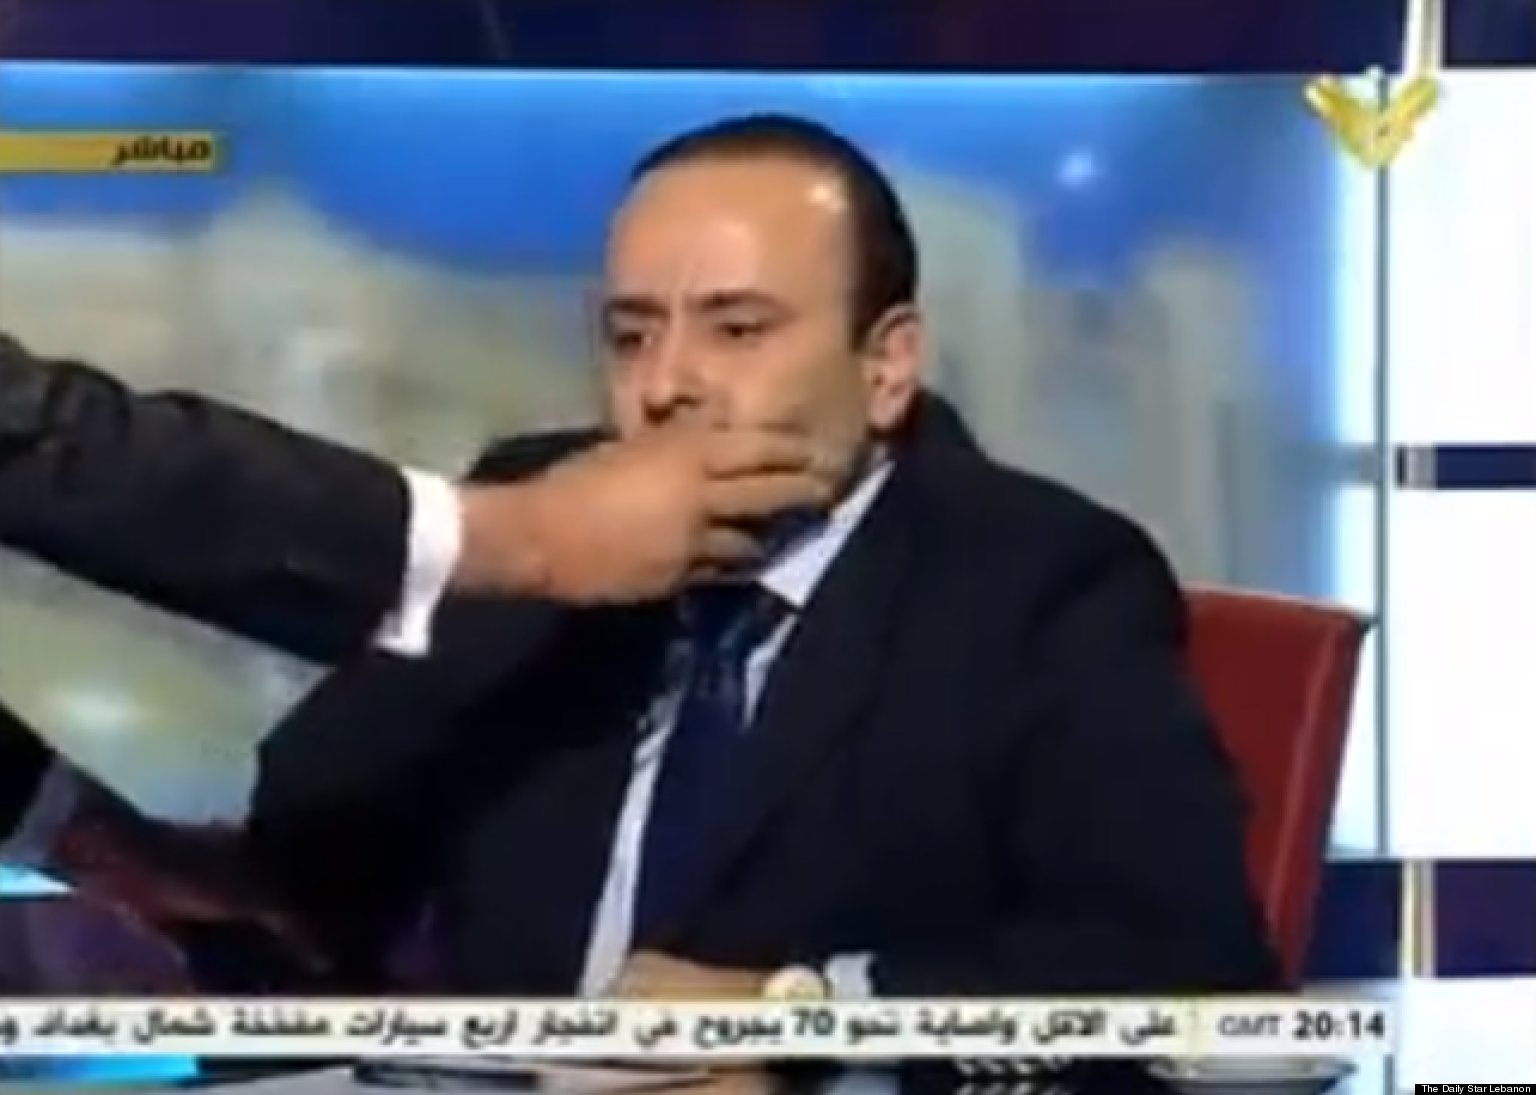 Syria Discussion Sparks Fight Between Guests During Live Show On Lebanon's Al-Manar TV (VIDEO ...